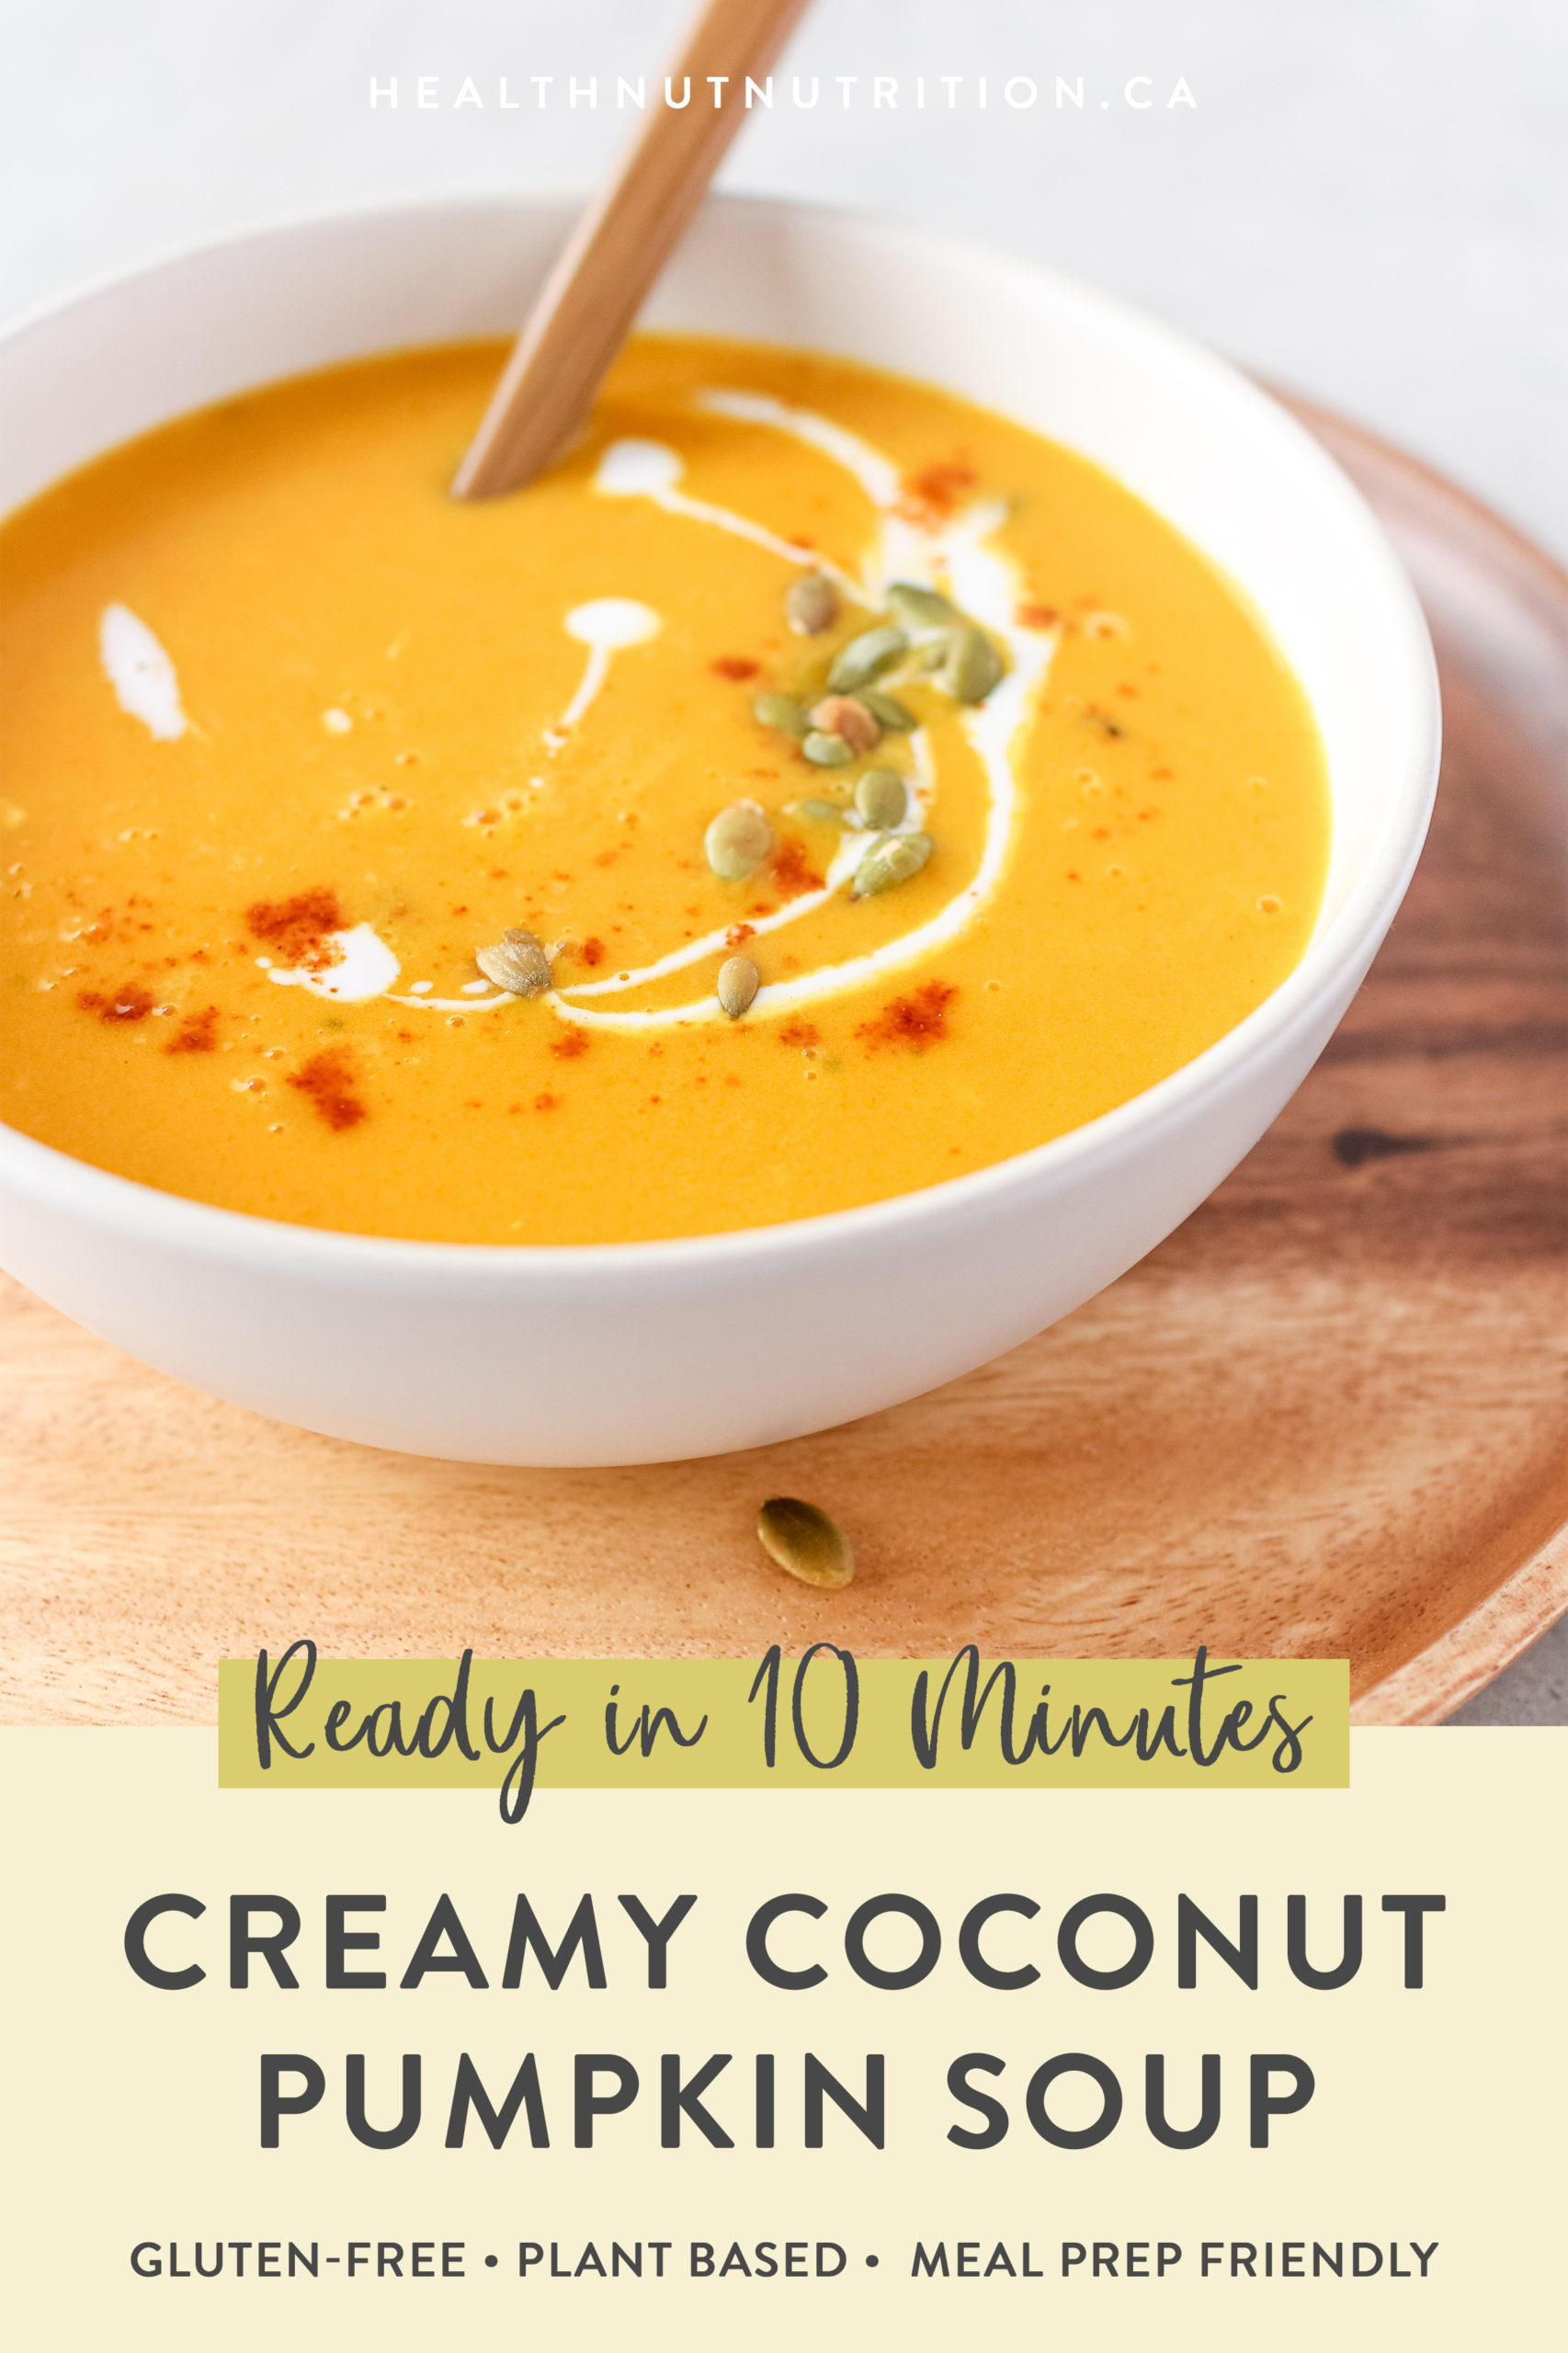 This rich and Creamy Coconut Pumpkin Soup made with pumpkin purée and coconut milk is packed full of flavour and ready in 10 minutes!